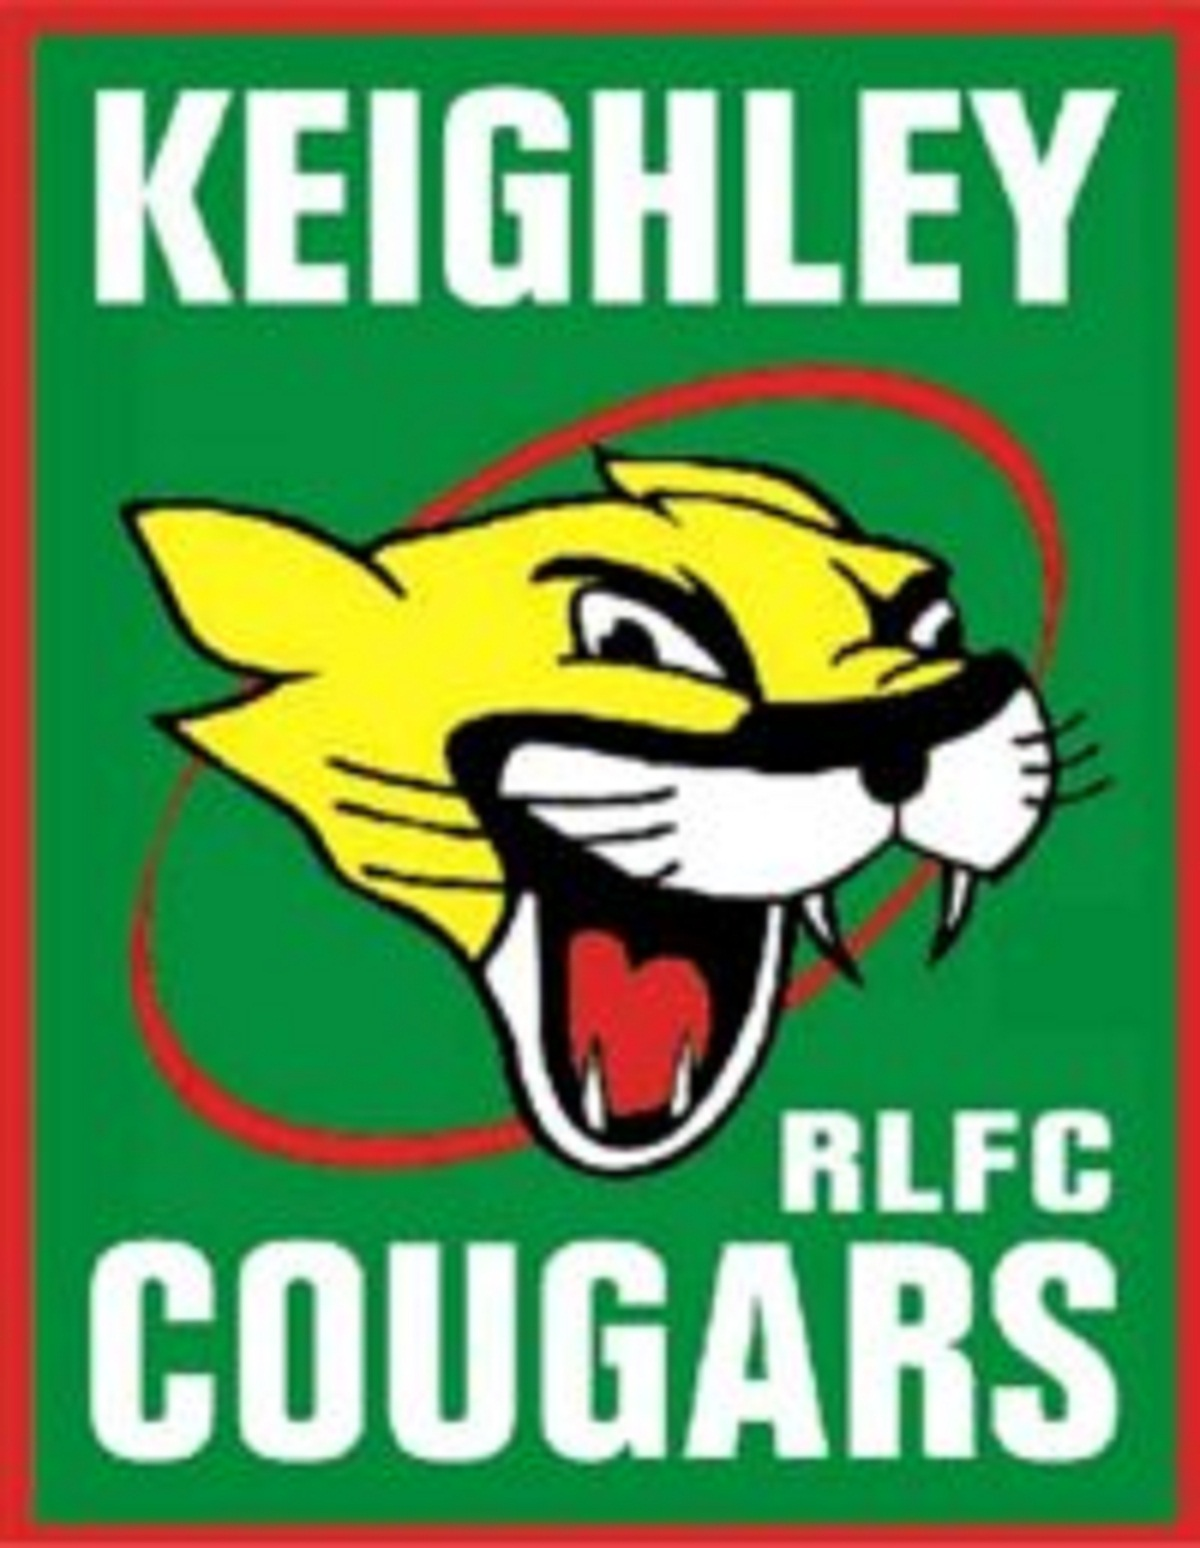 Keighley Cougars march into Challenge Cup quarter-finals